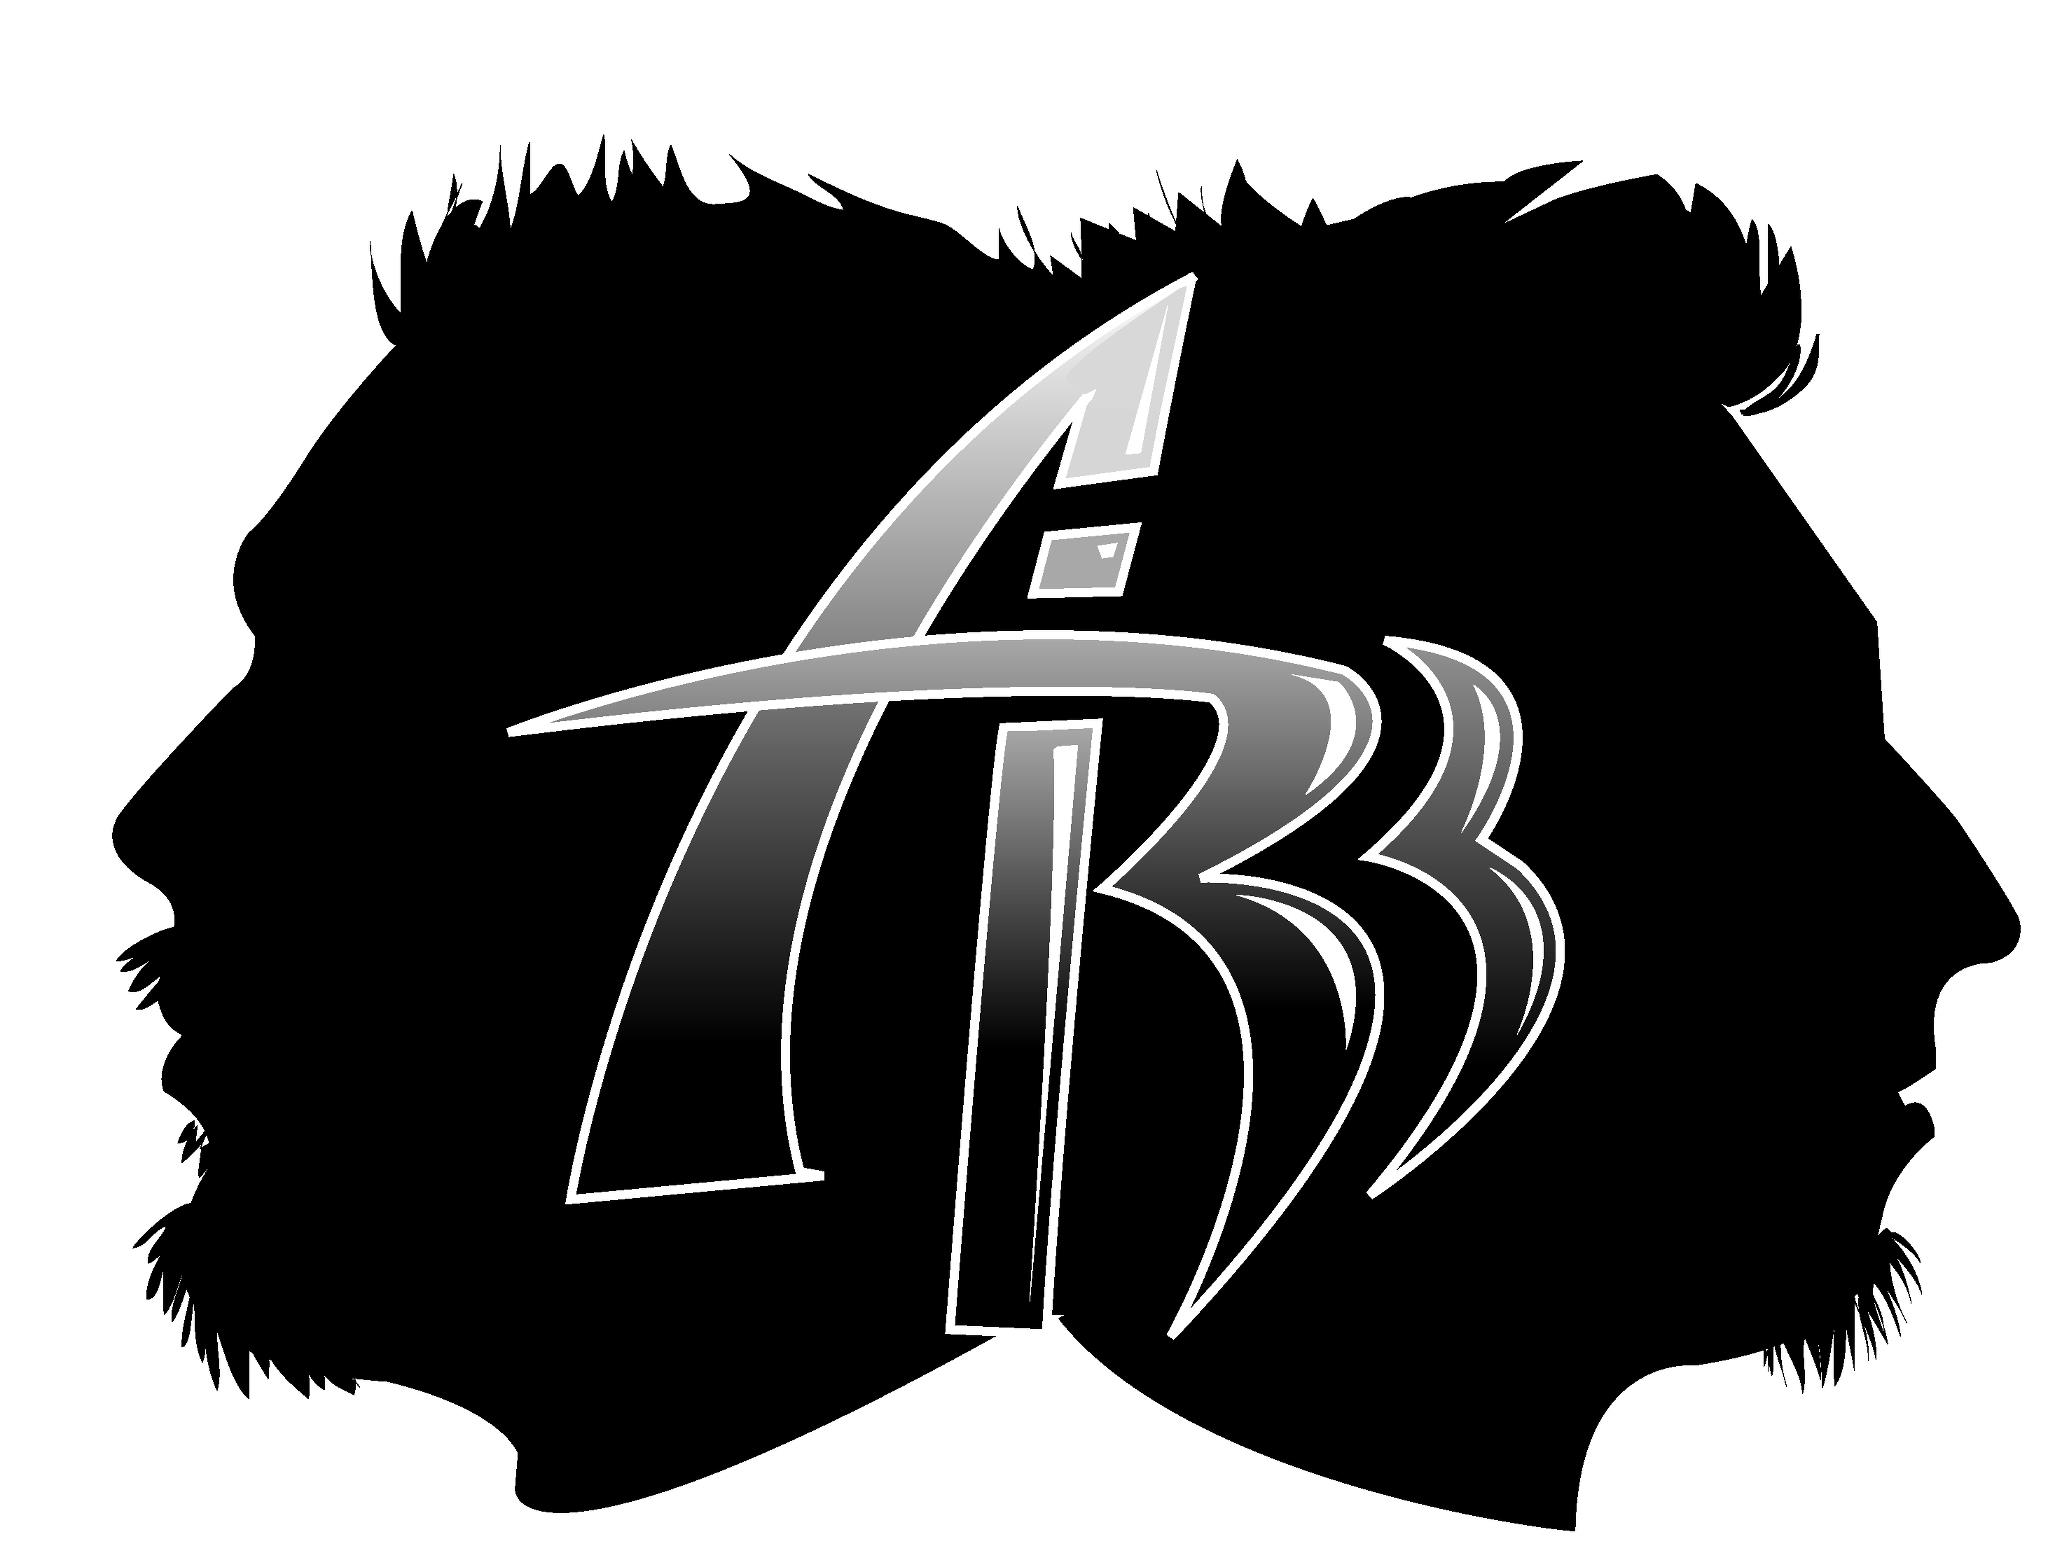 Company logo of Airbrush Brothers